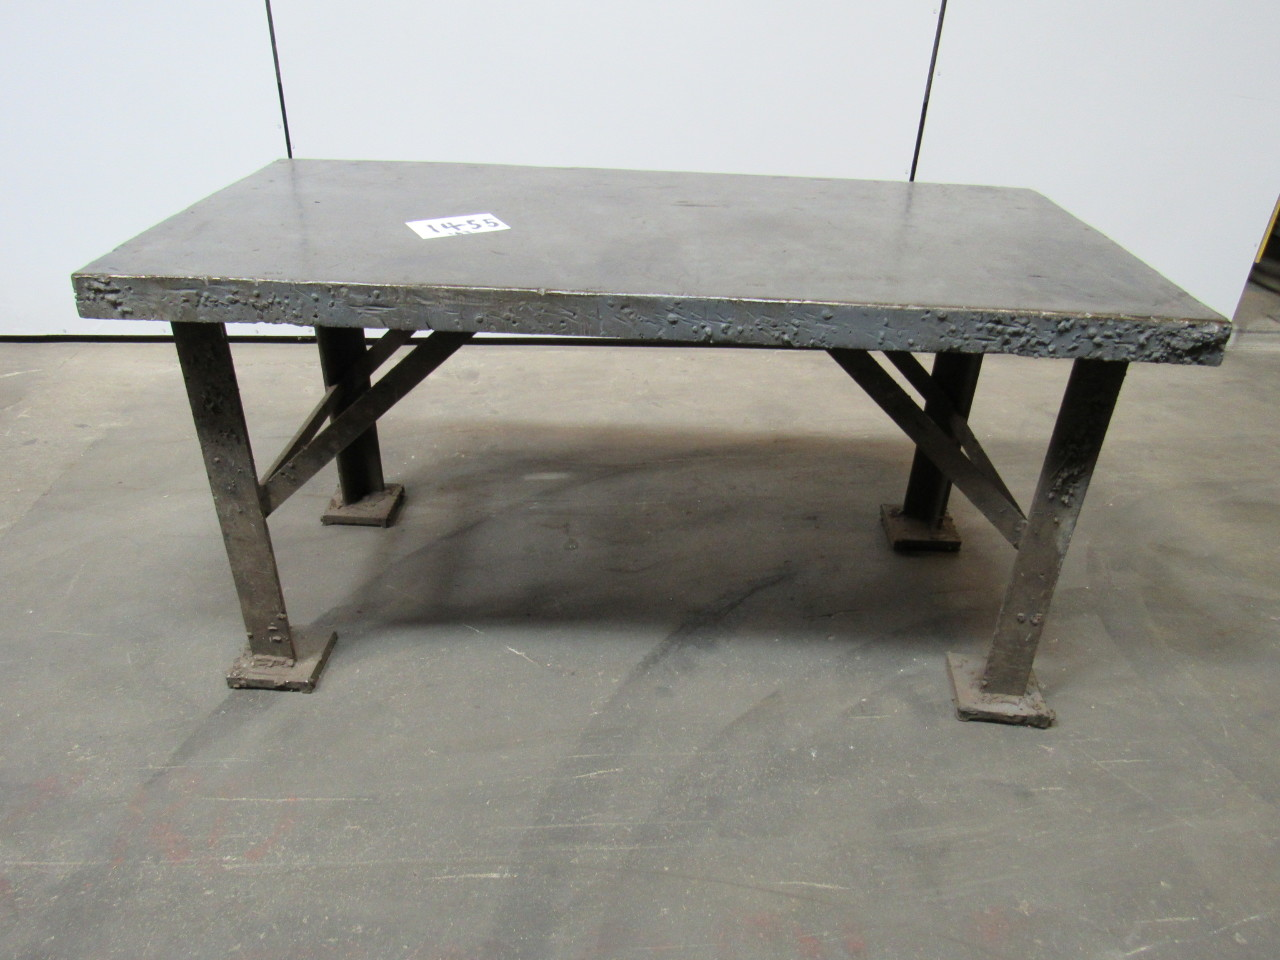 60 x30 x 30 1 2 welding layout assembly table bench 2 1 2 solid top ebay 30 bench